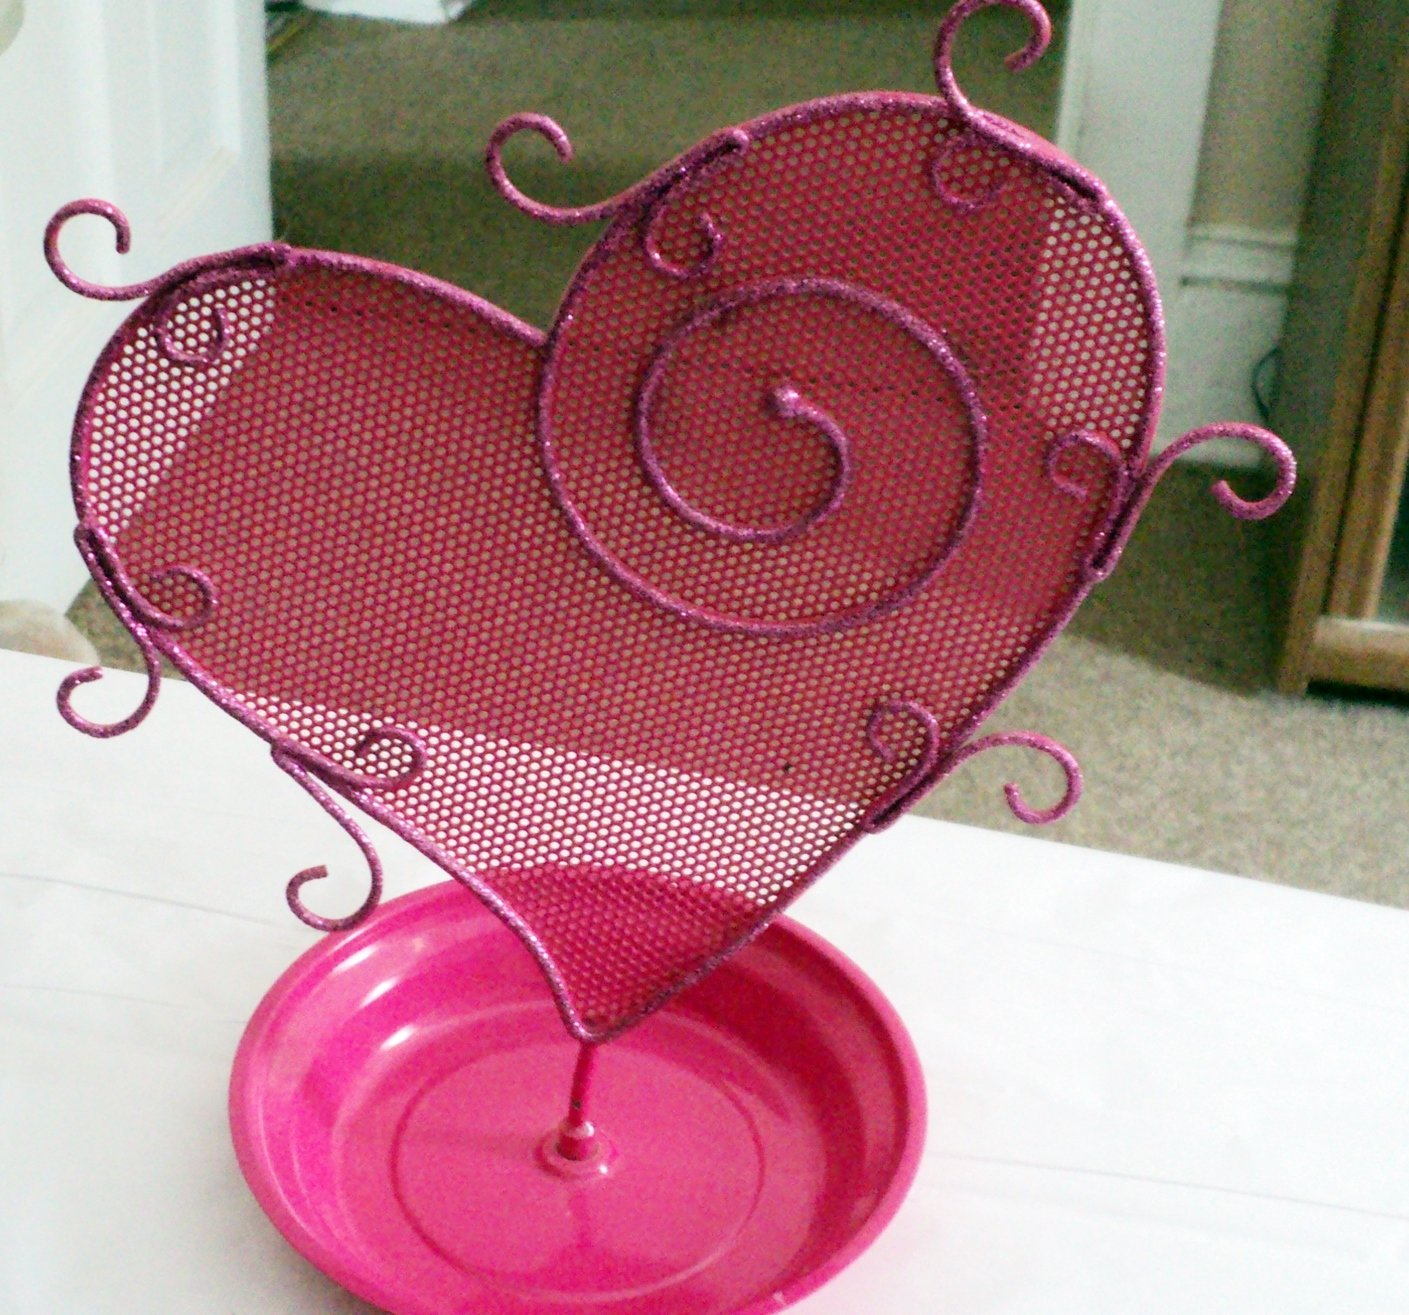 Bright Pink Heart Bling Metal Mesh Earring Ear Stud Jewelry Display Holder Rack #00237